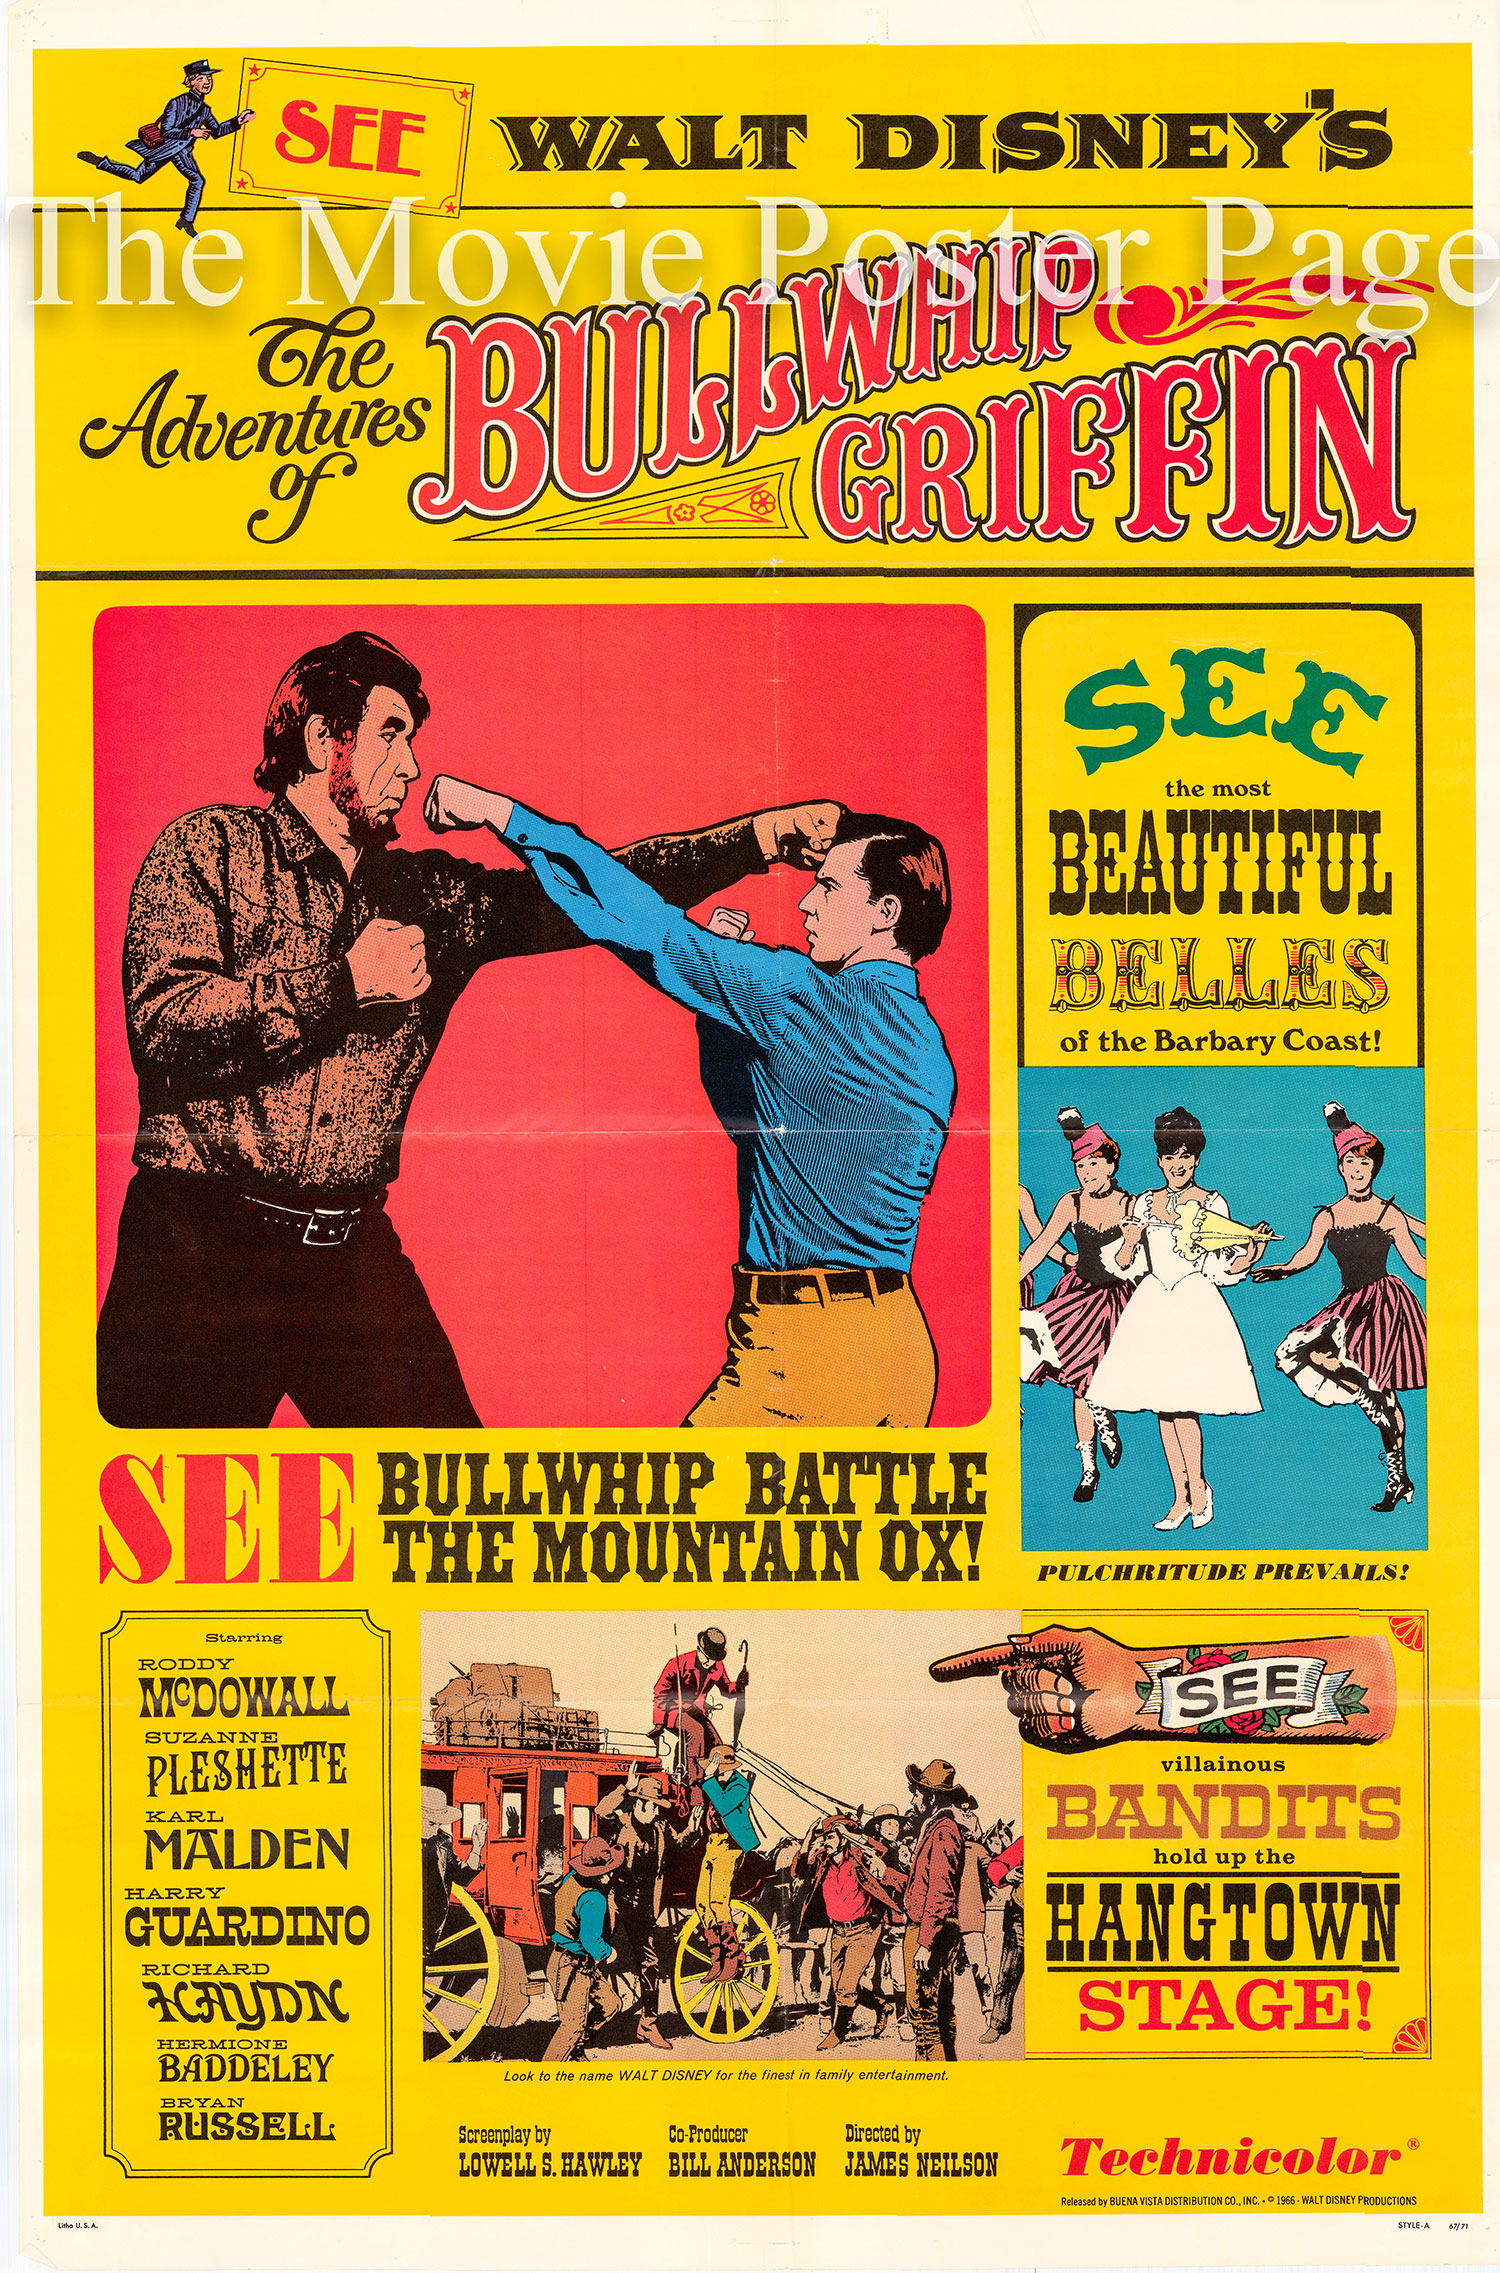 Pictured is a US one-sheet poster for the 1967 James Neilson film The Adventures of Bullwhip Griffin starring Roddy McDowall as Bullwhip Griffin.